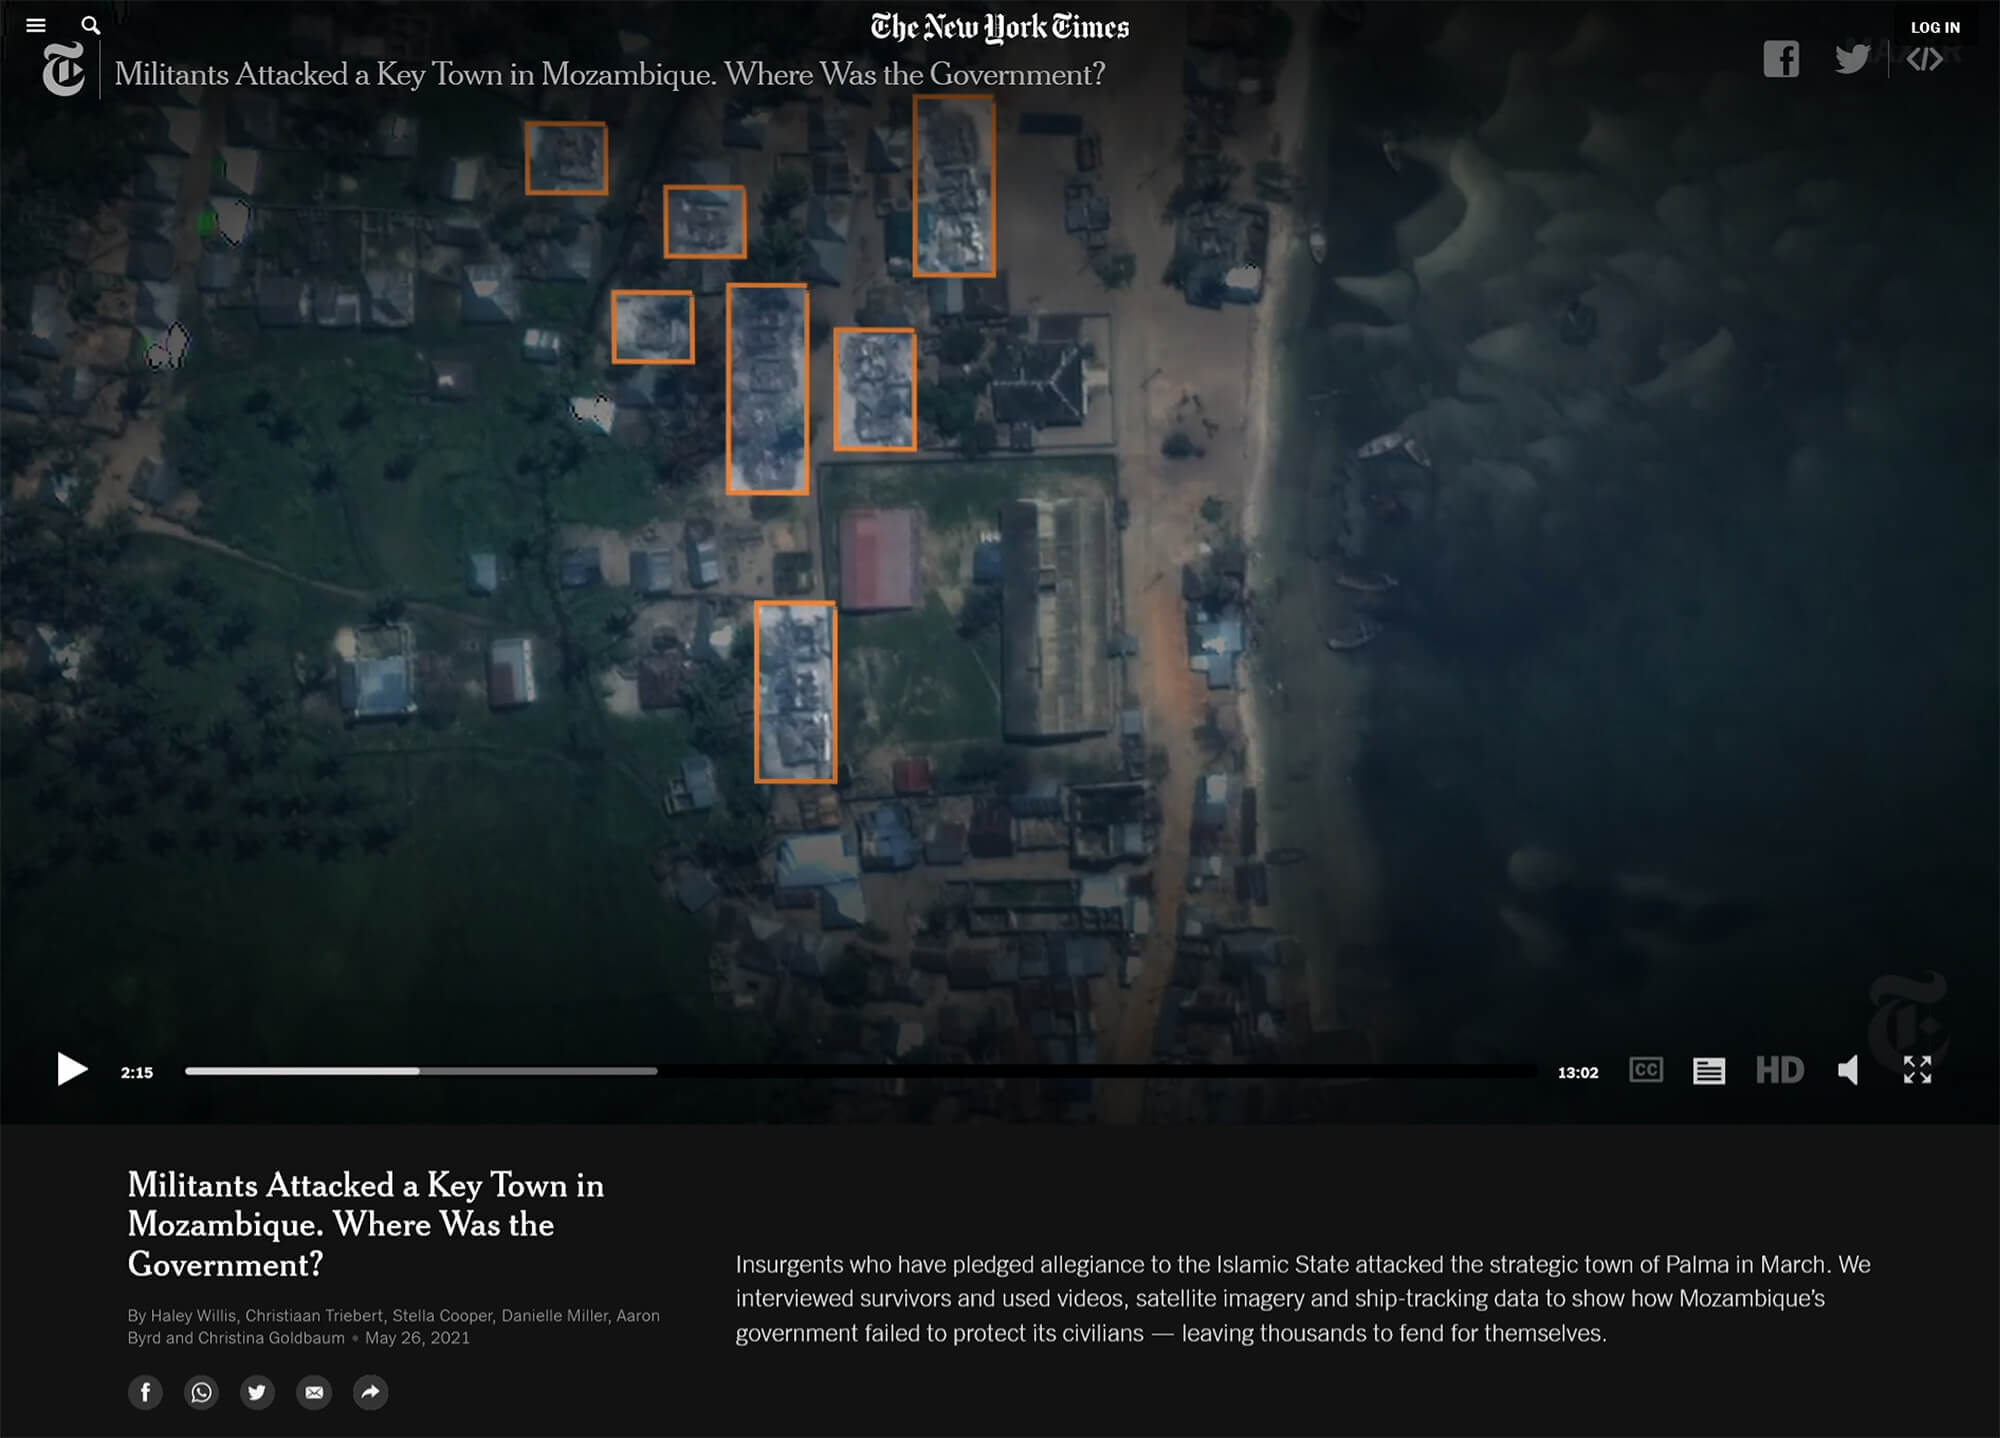 Screen grab of video from New York Times: Militants Attacked a Key Town in Mozambique. Where Was the Government?